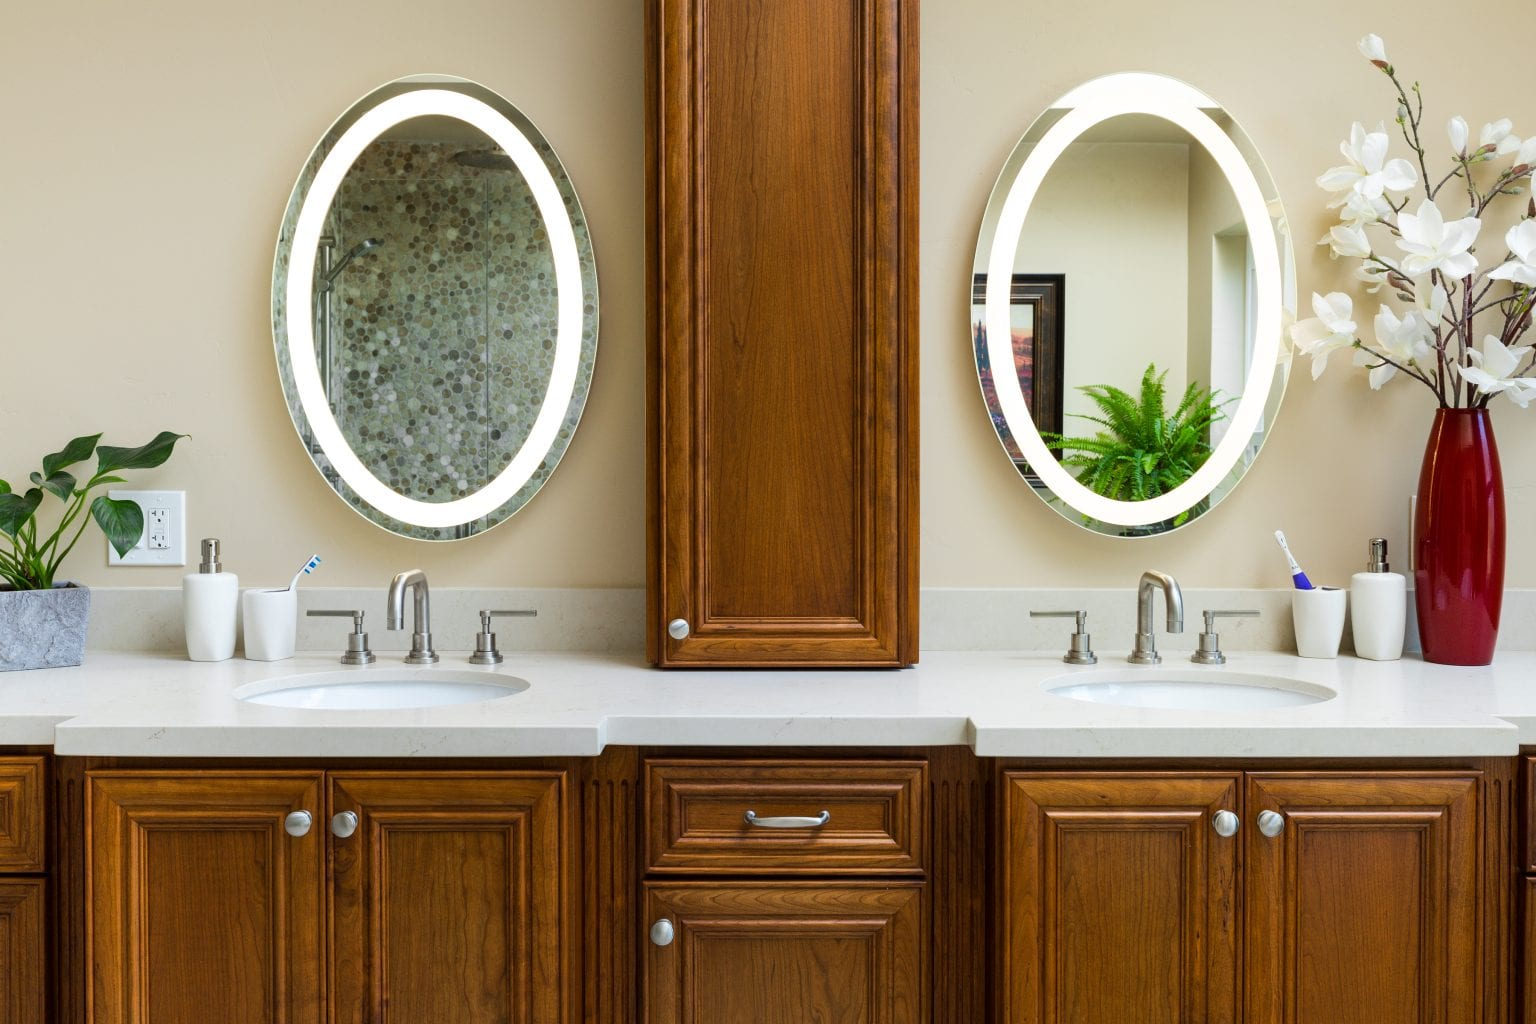 Bathroom with two oval mirrors with built-in lighting